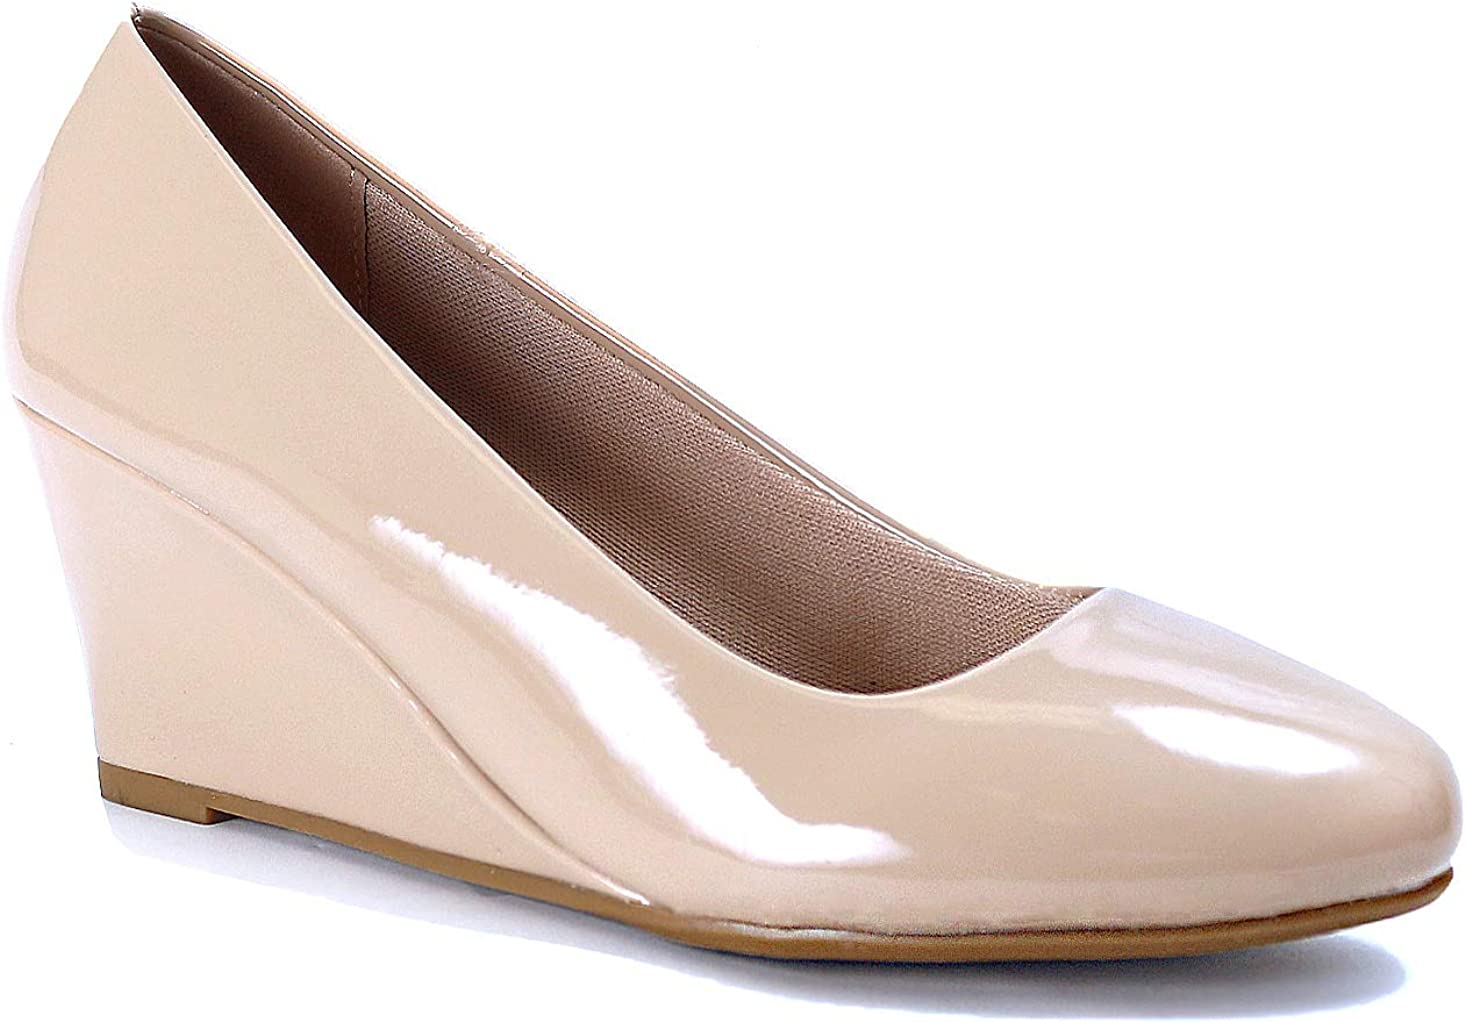 Guilty Shoes Heart Classic 70% OFF Portland Mall Outlet S Wedge Office Comfortable